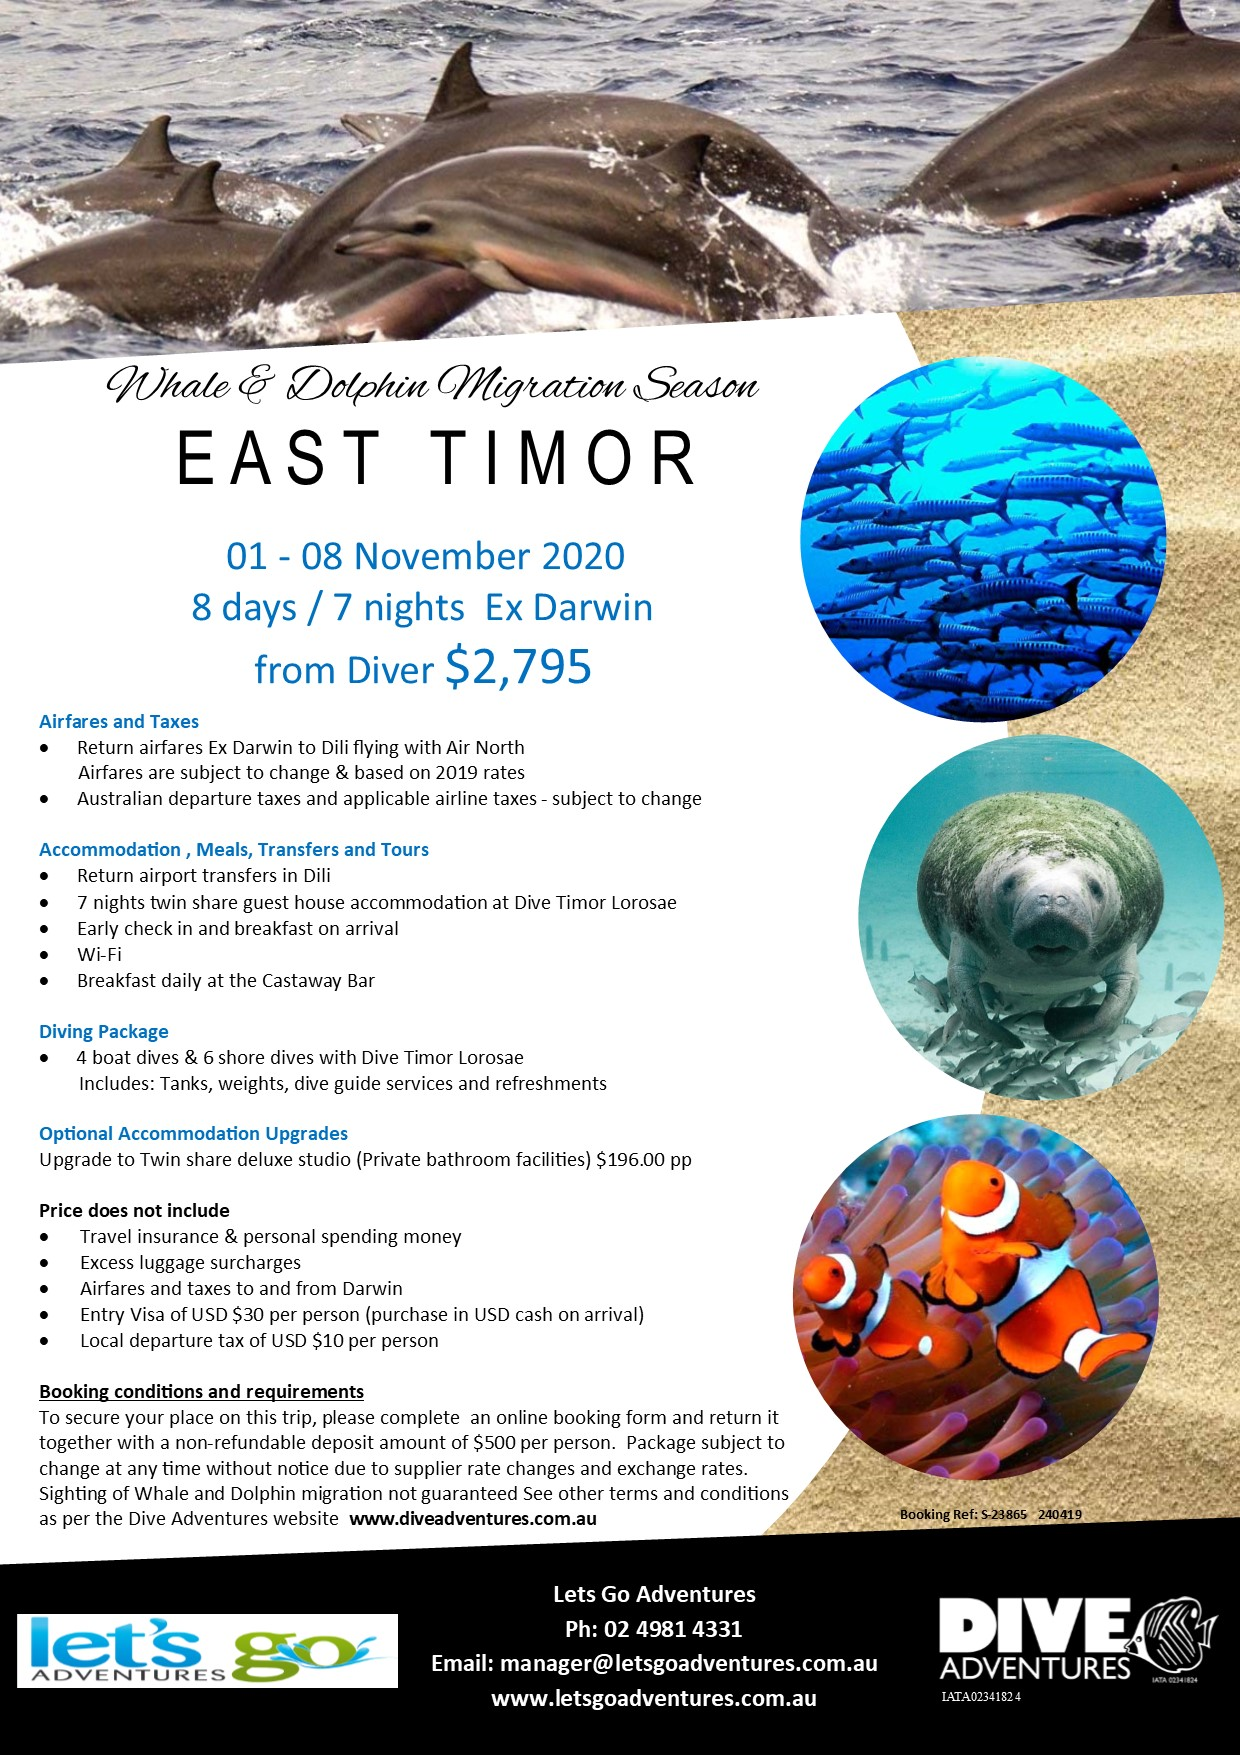 East Timor with Lets Go Adventures